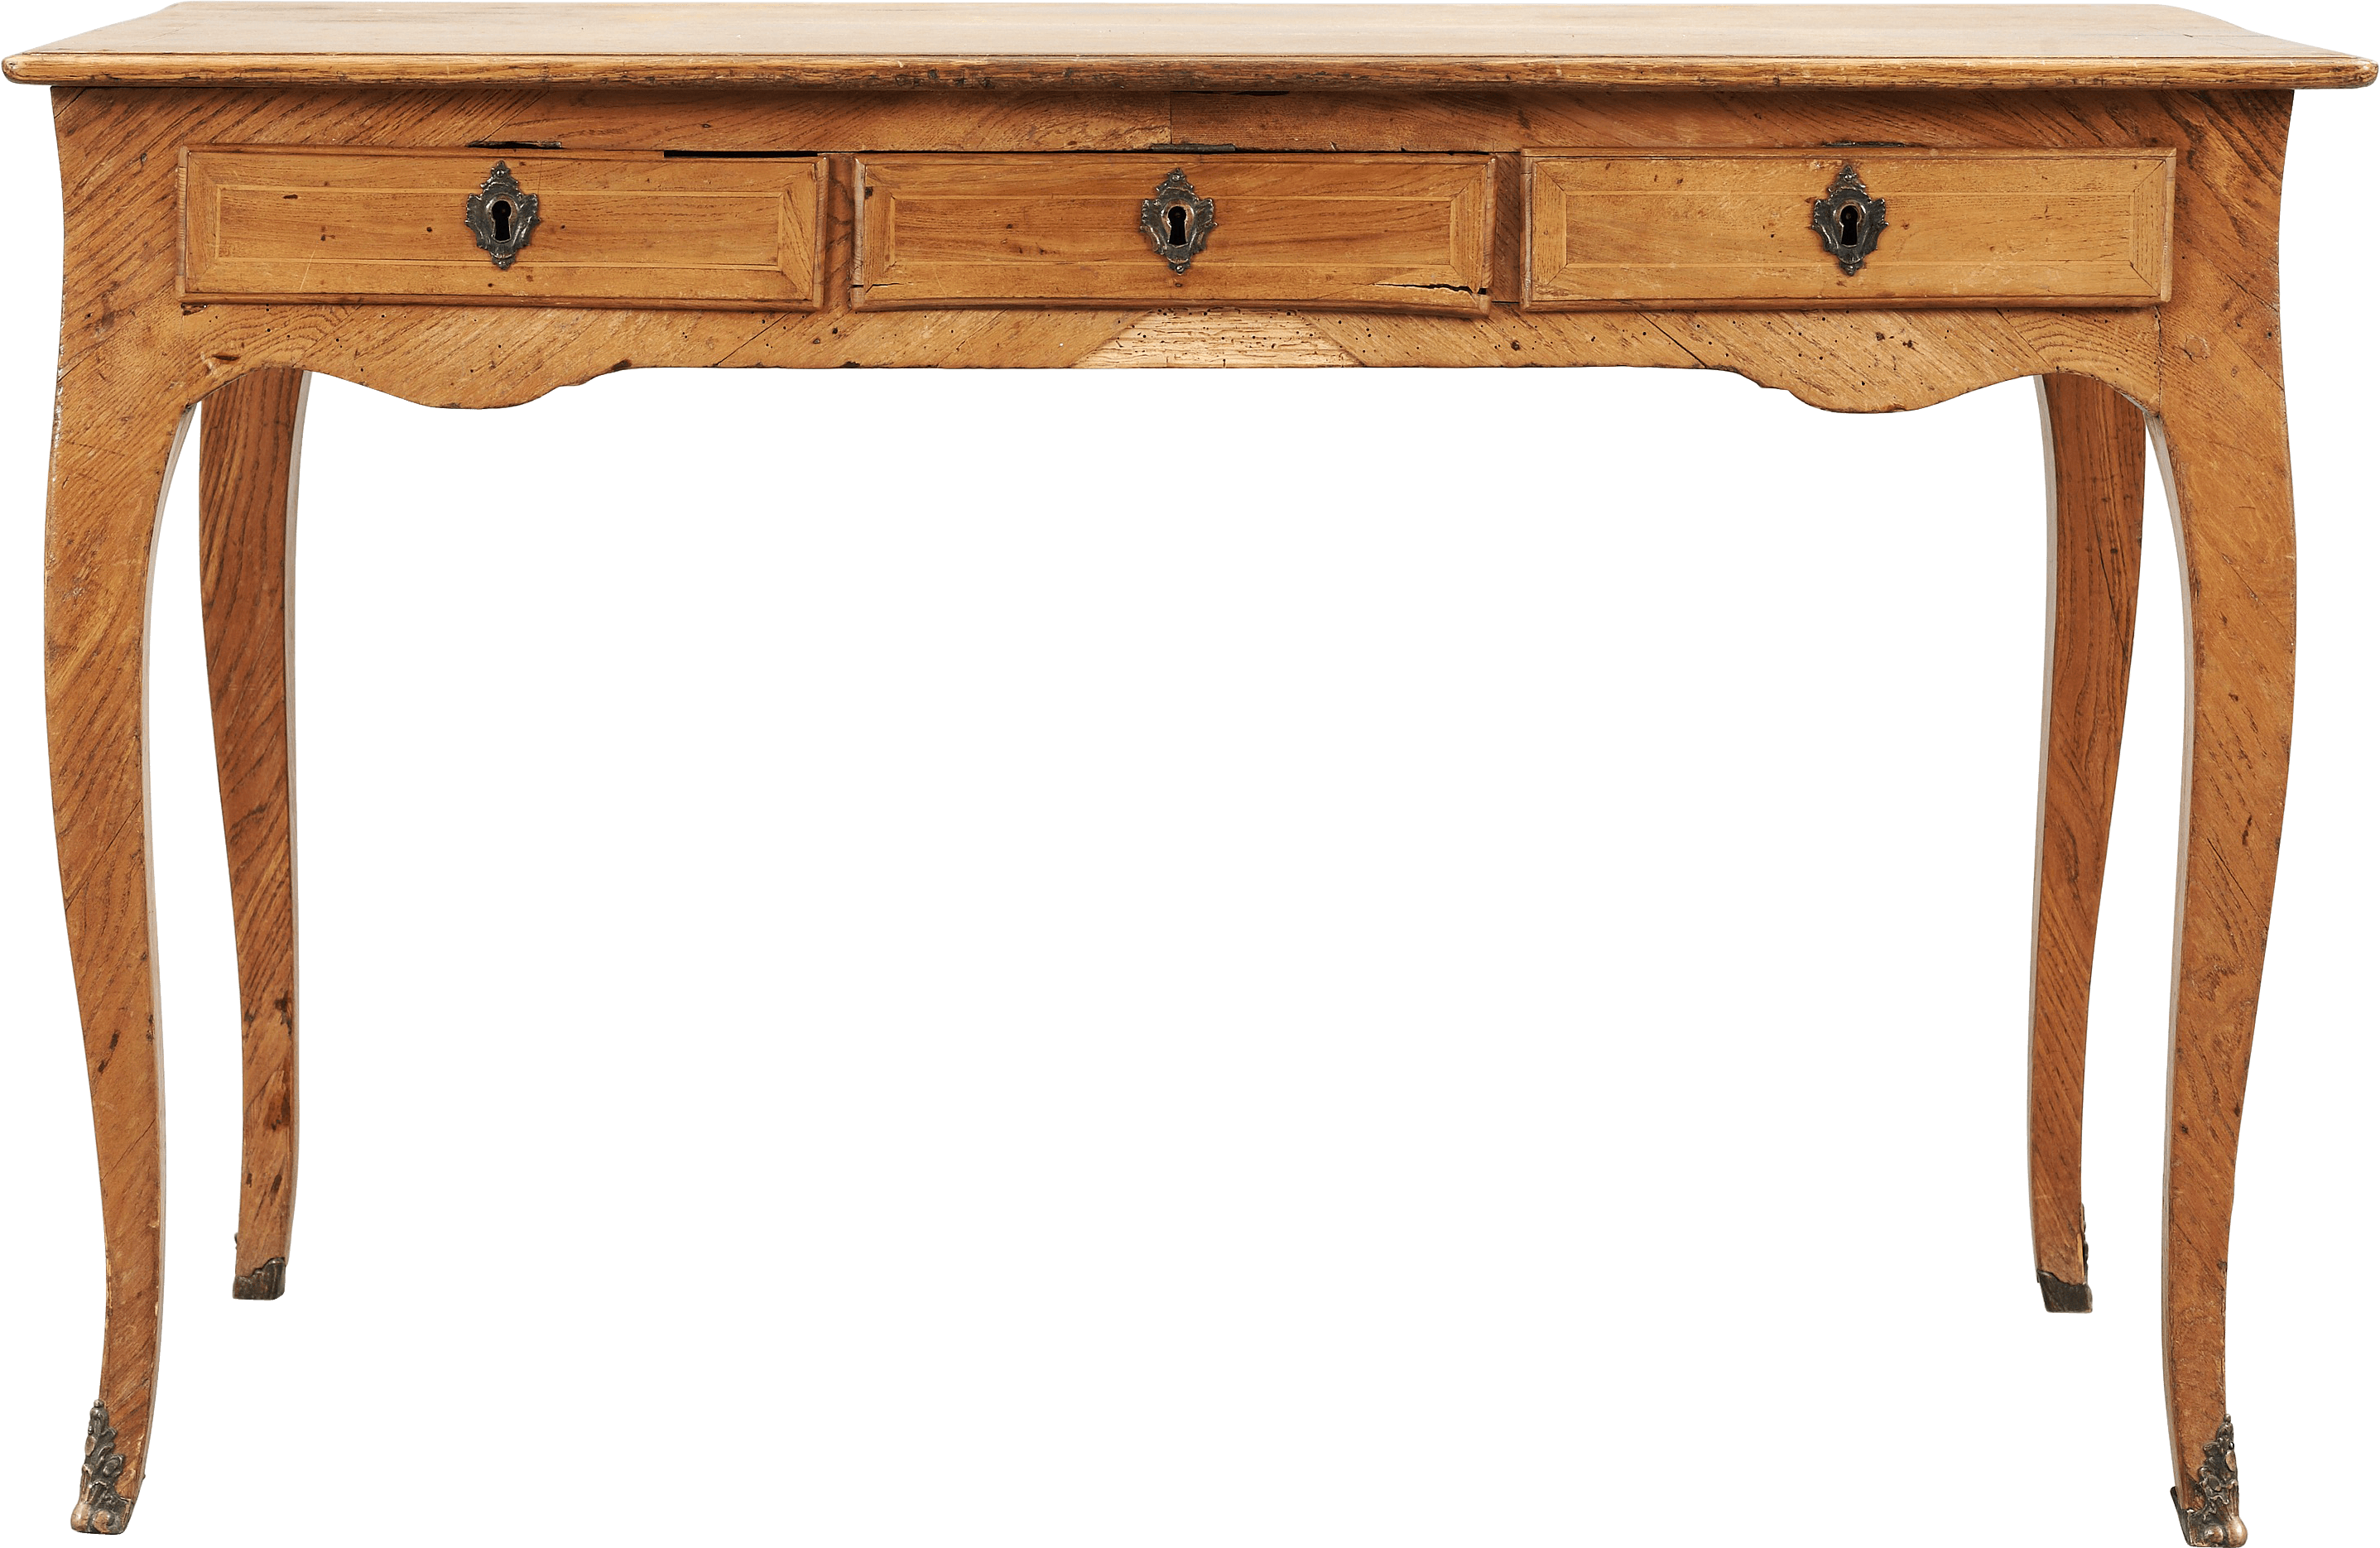 Wood clipart wood table Wooden Table PNG Old Chairs